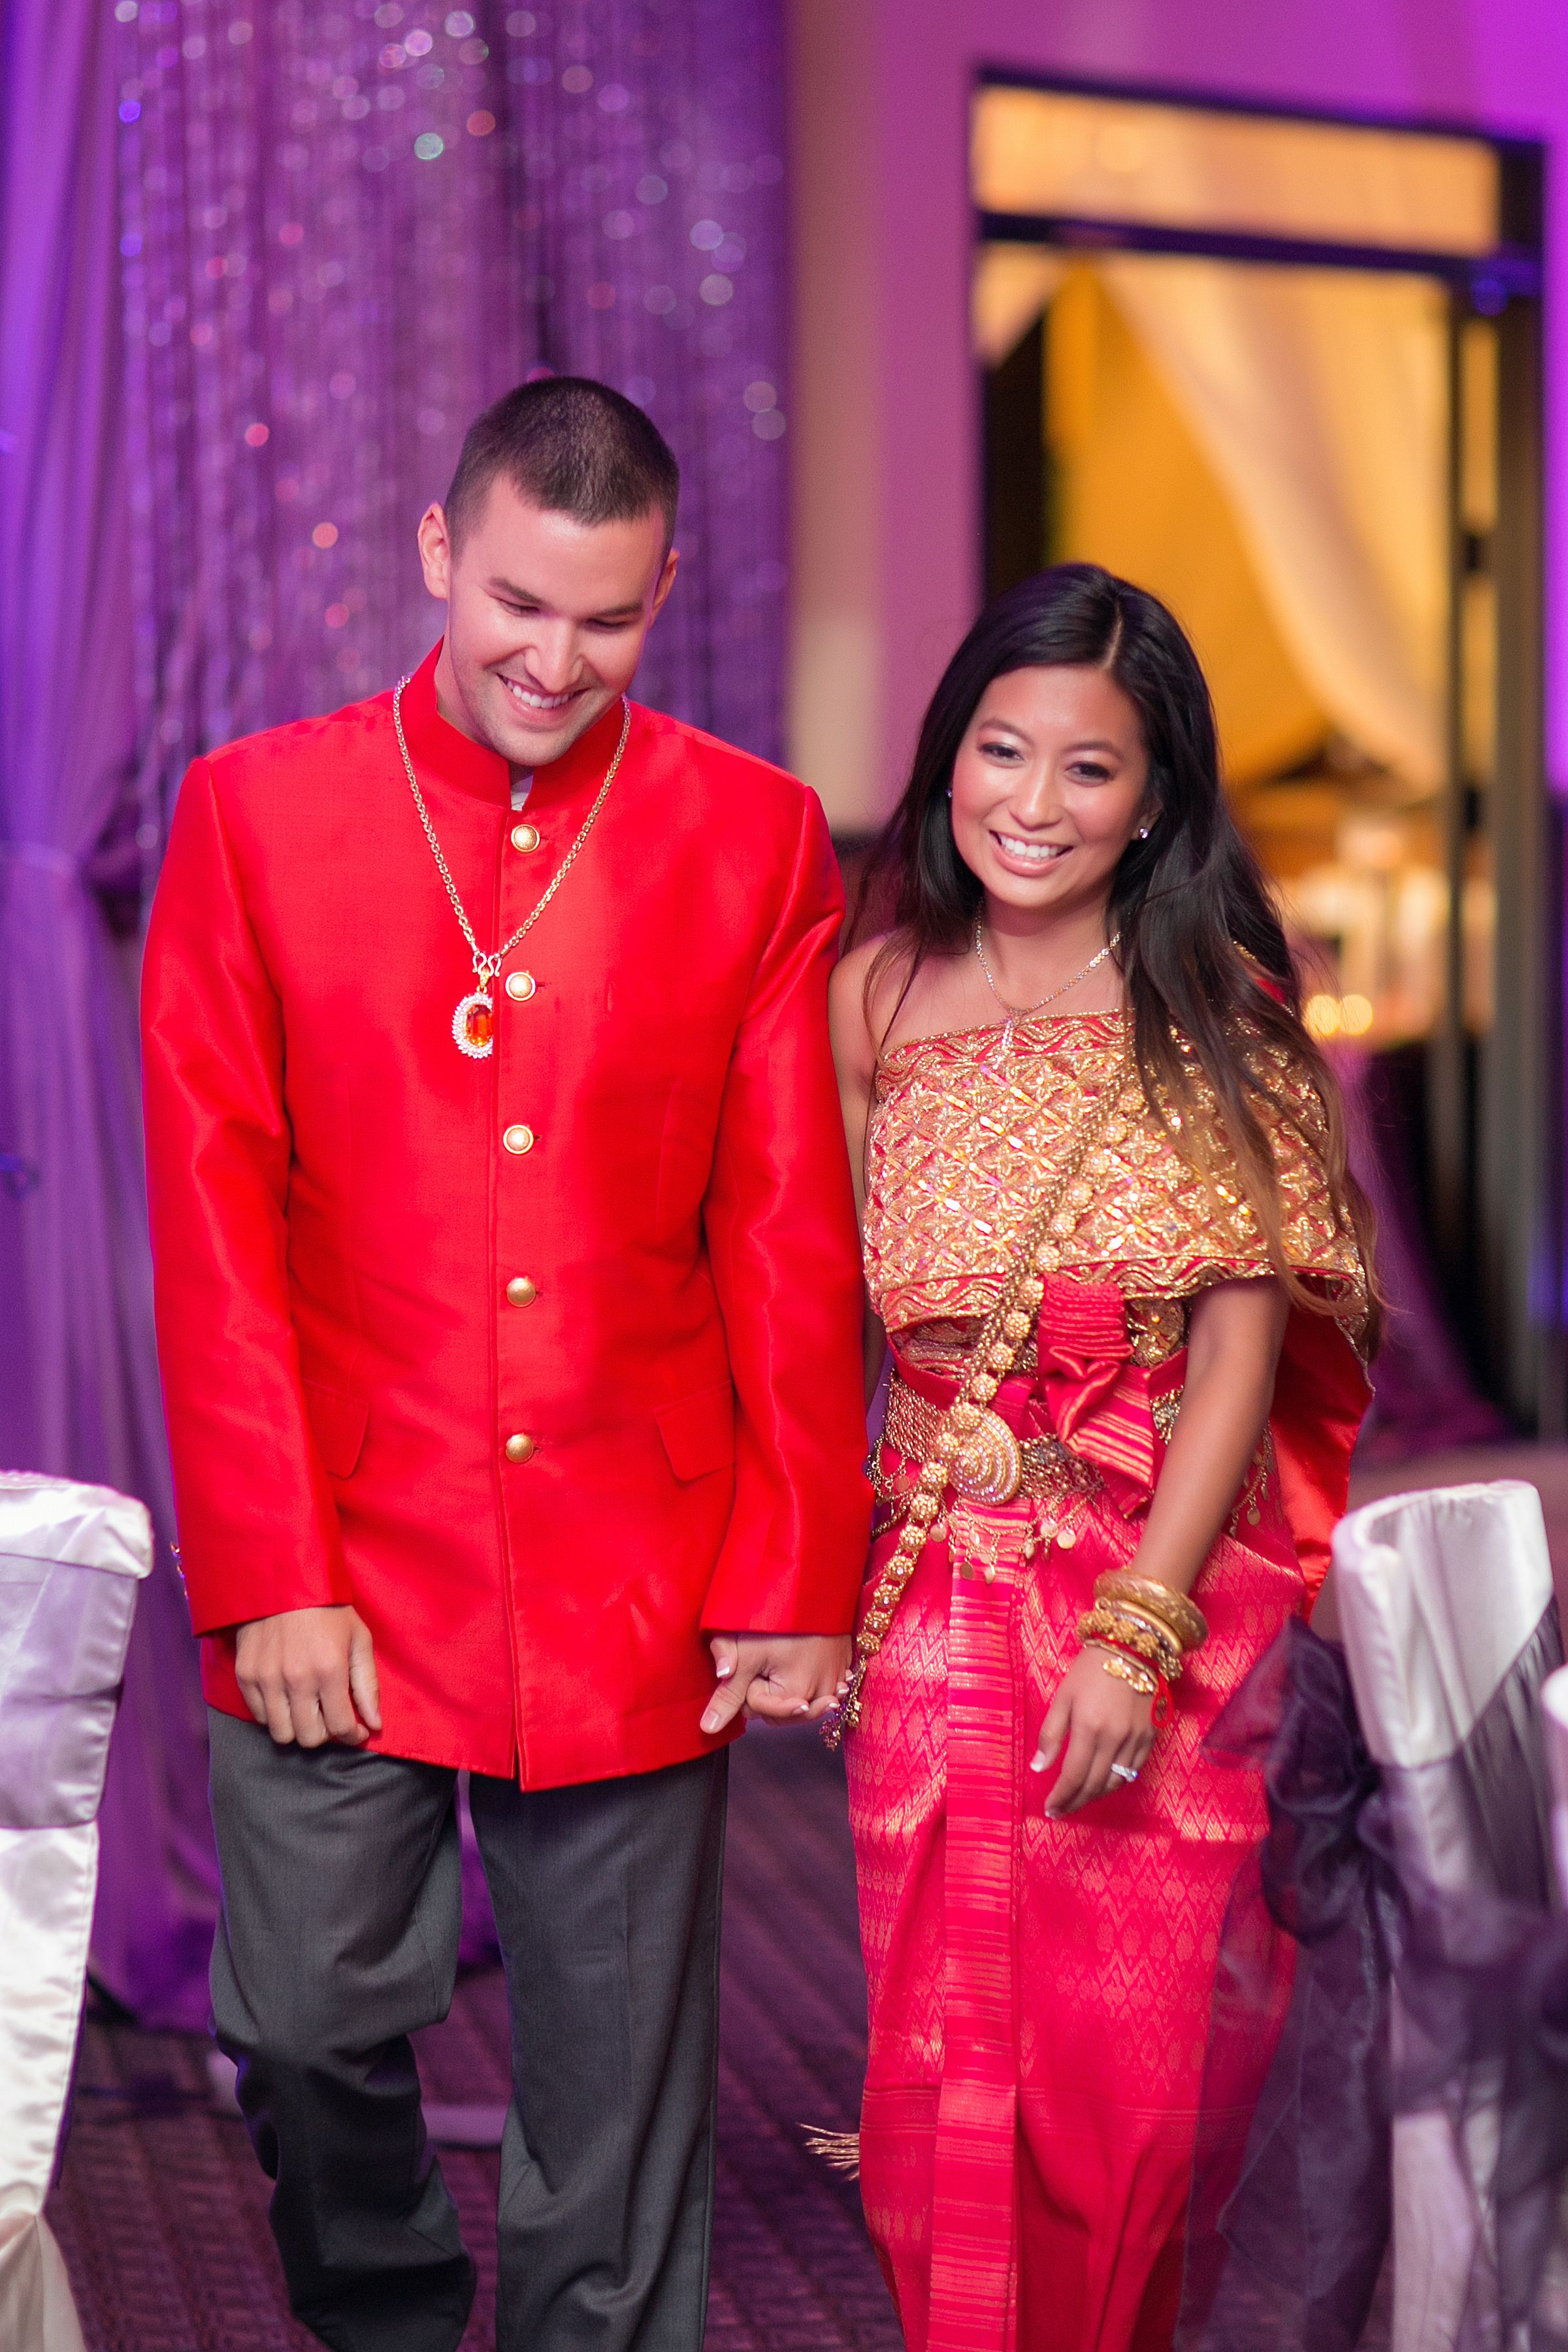 Red dress for wedding reception  Cambodian wedding red outfits for the reception  Traditional style